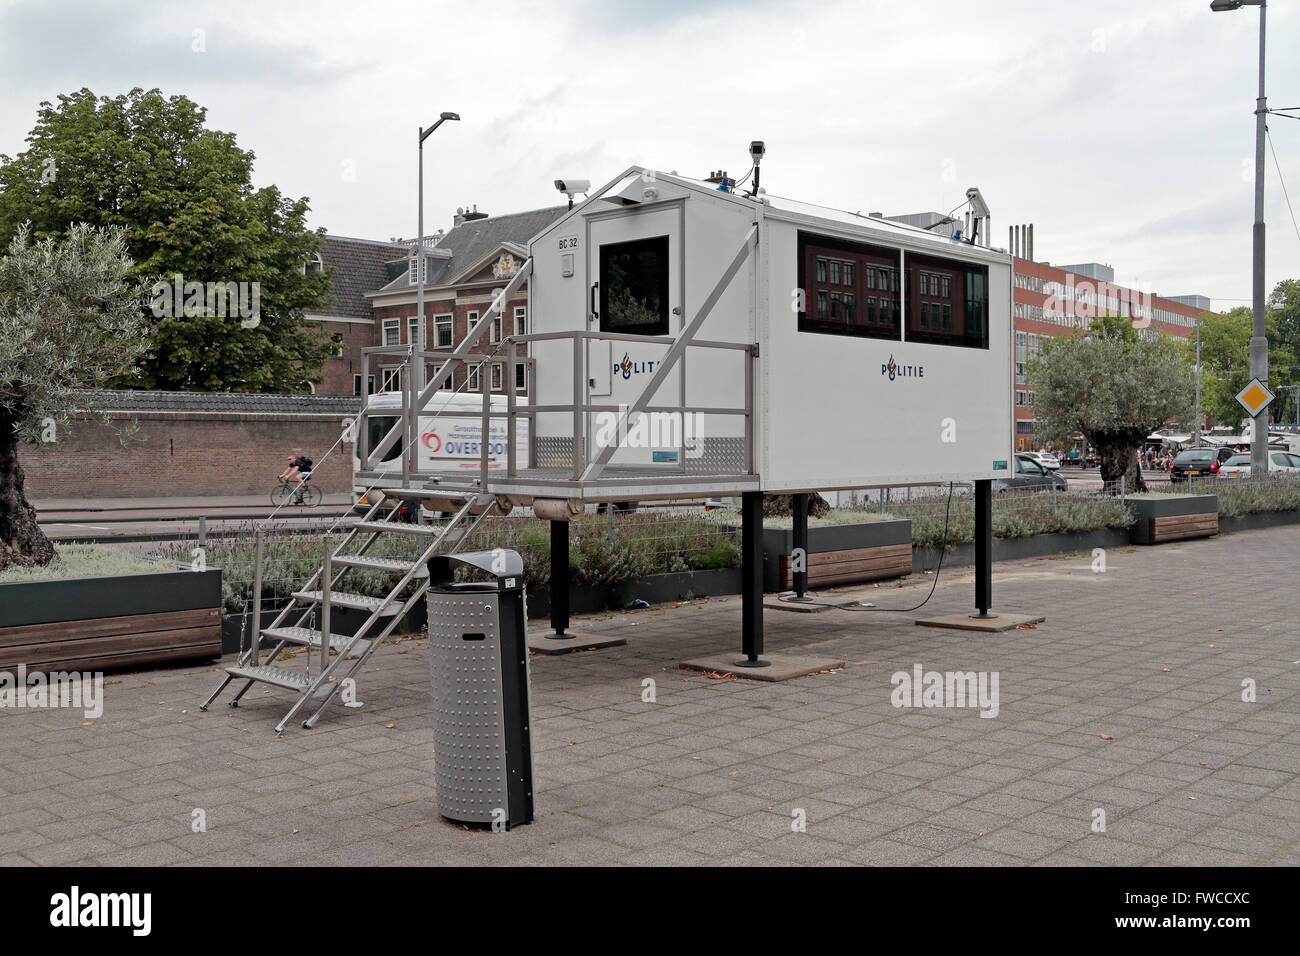 A temporary Police (Politie) CCTV unit in Amsterdam, Netherlands. Stock Photo